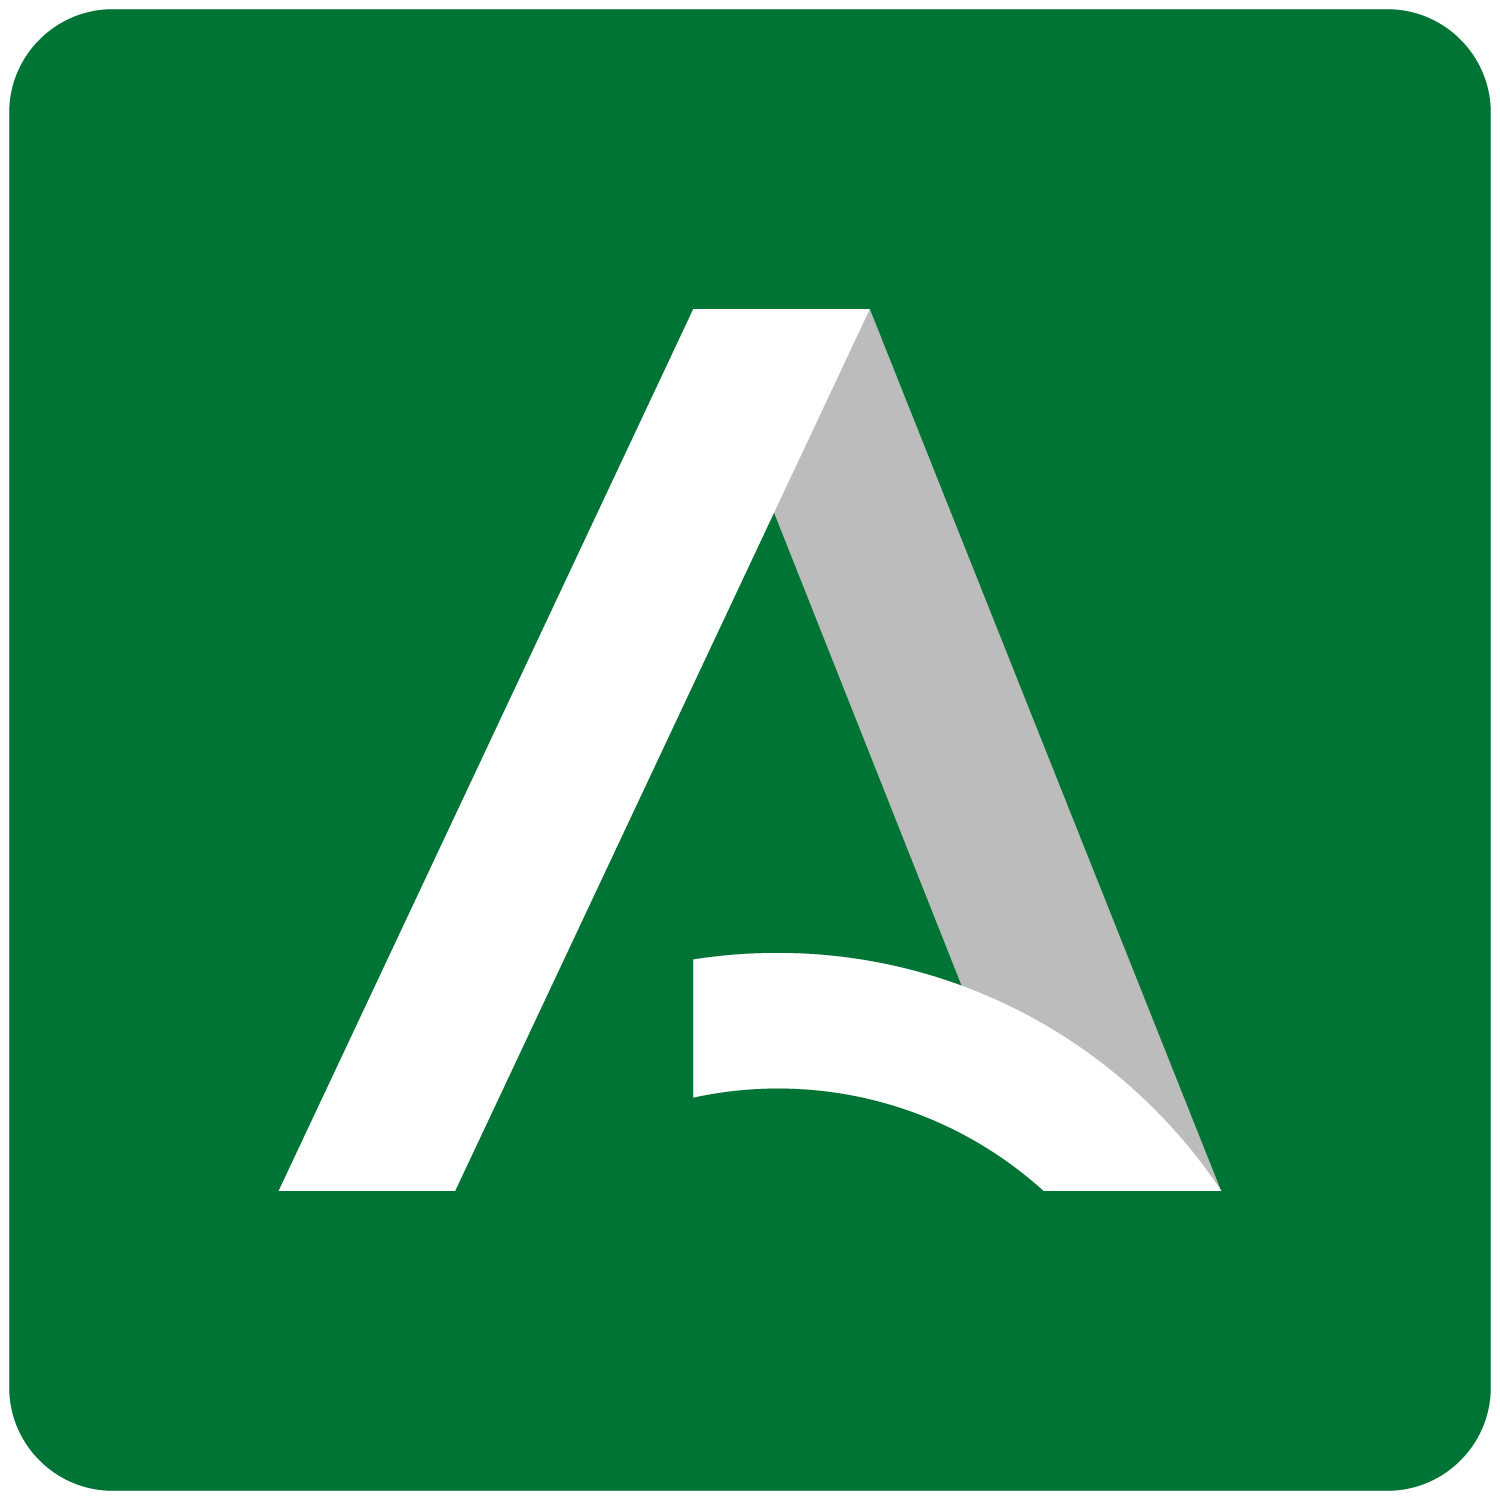 Logo de la Junta de Andalucía